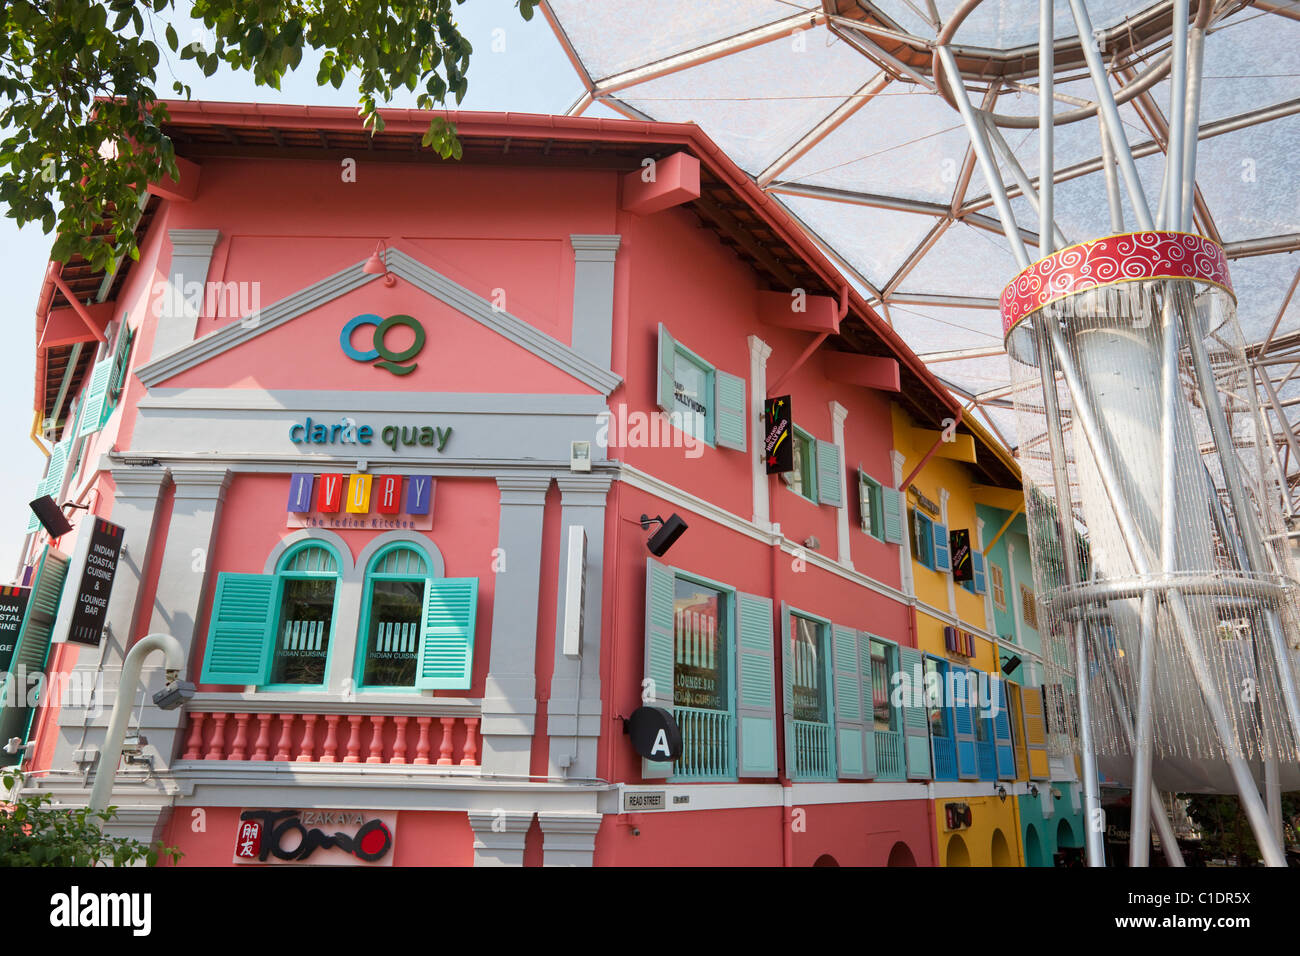 Colourful architecture of Clarke Quay, Singapore - Stock Image